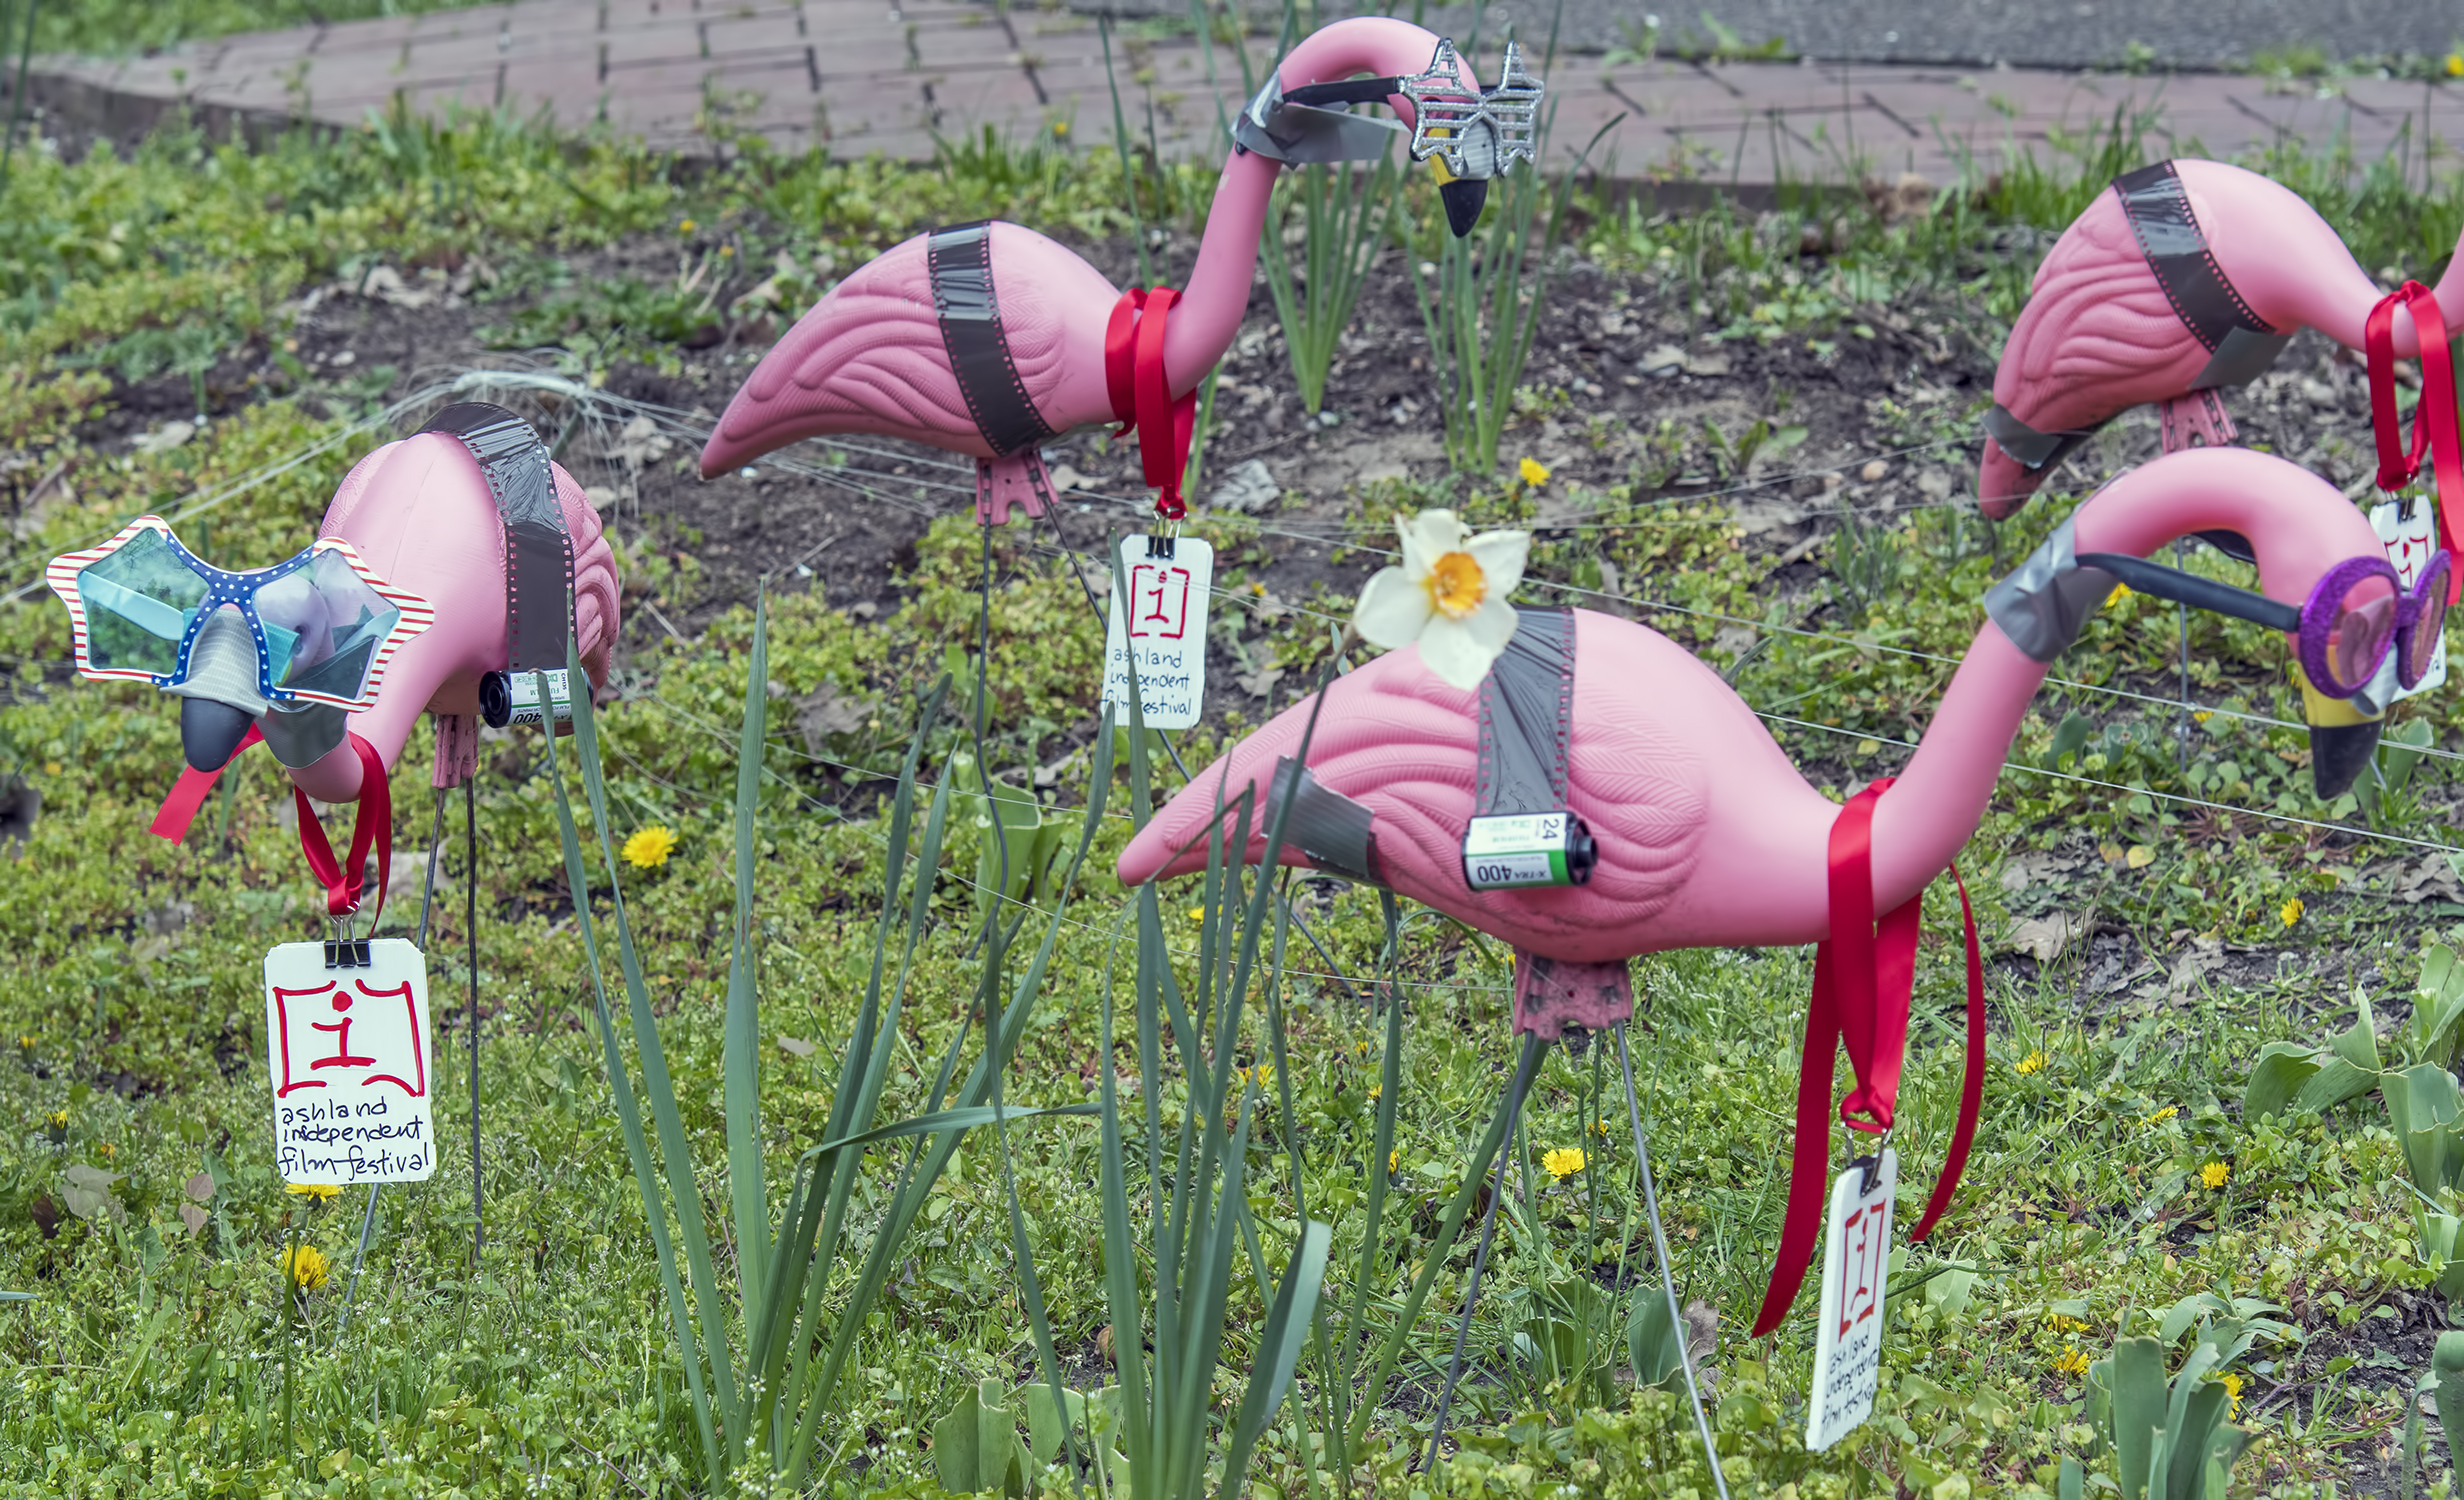 Aiff Ashland Independent Film Festival Al Case Pink Flamingo Lawn Ornaments